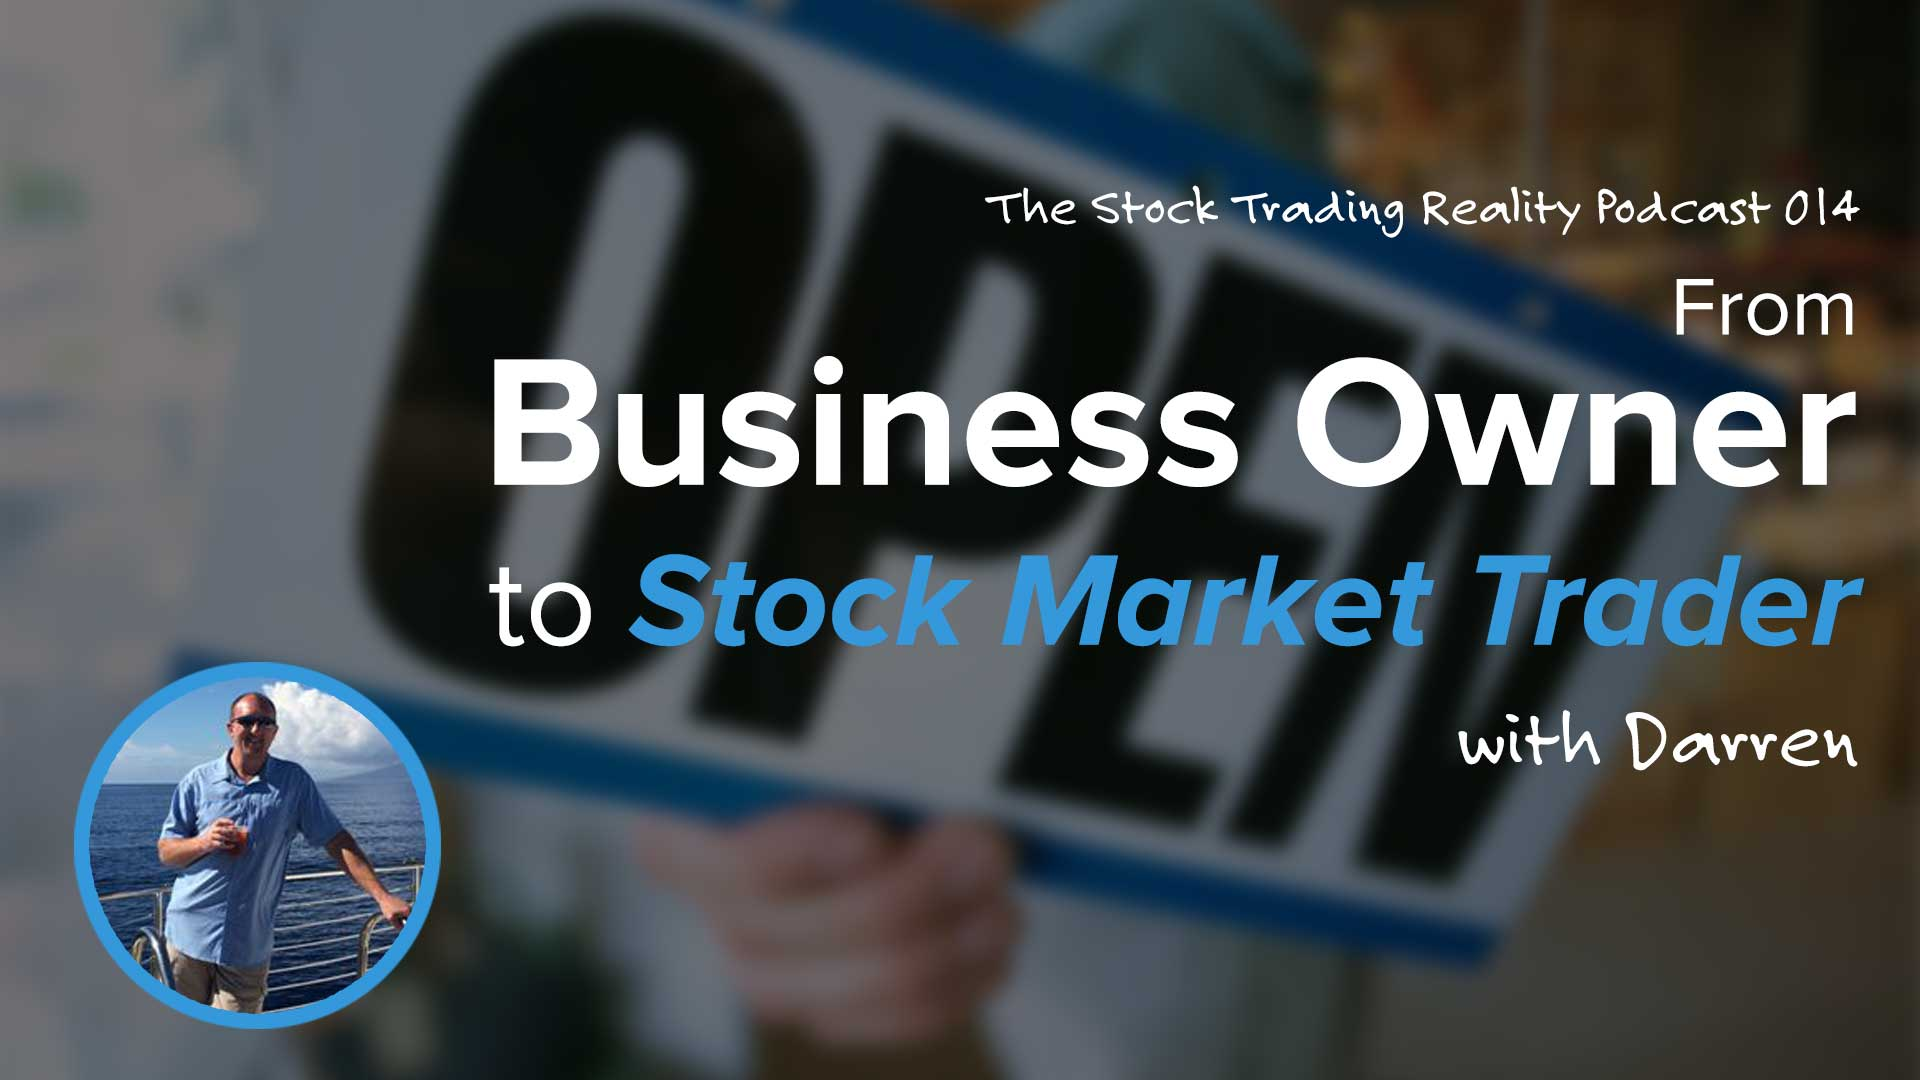 STR 014: From Business Owner to Stock Market Trader